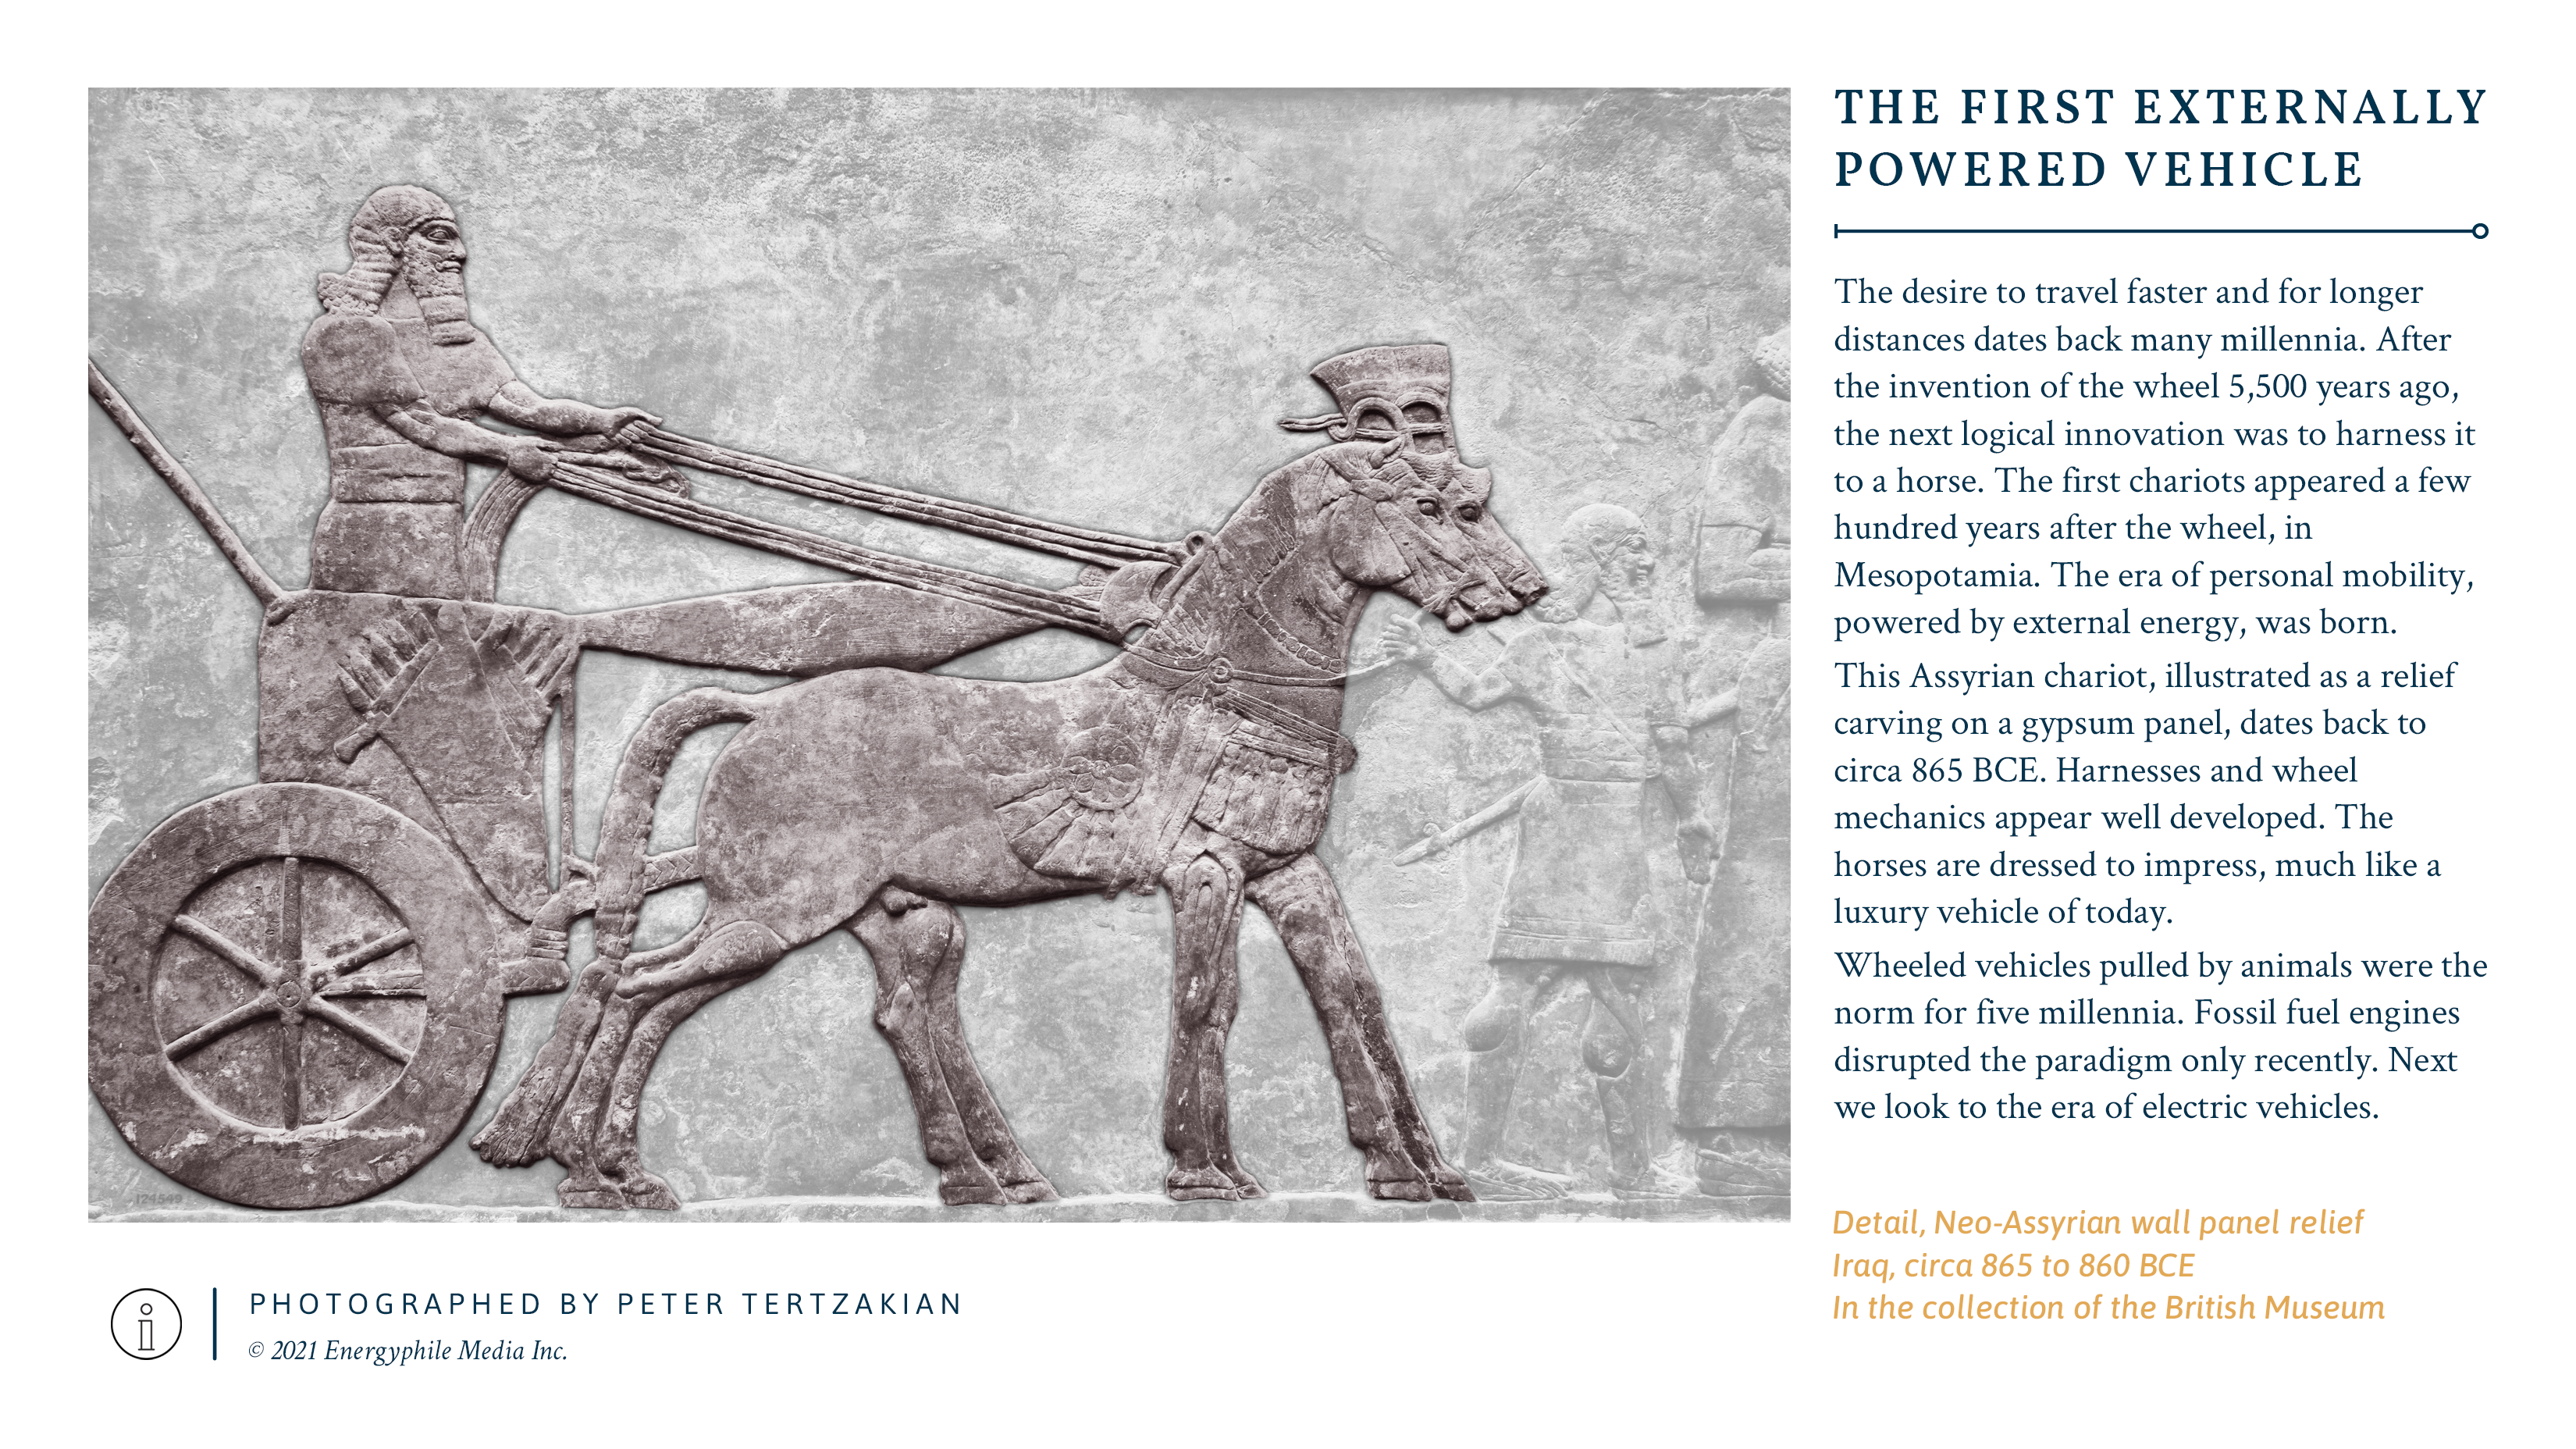 A neo-Assyrian wall panel relief of a horse-drawn chariot